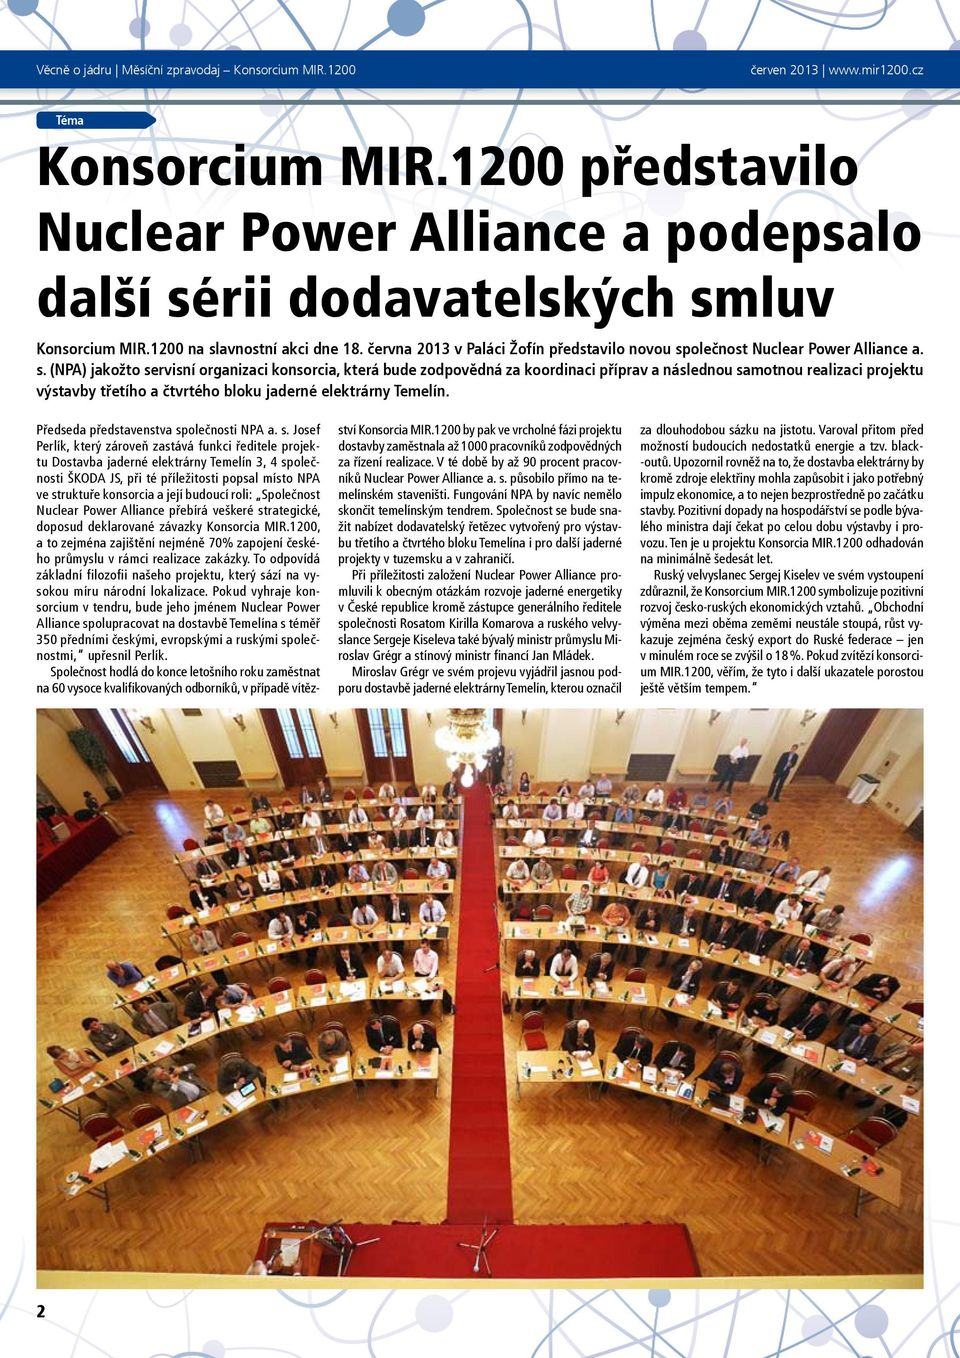 olečnost Nuclear Power Alliance a. s.